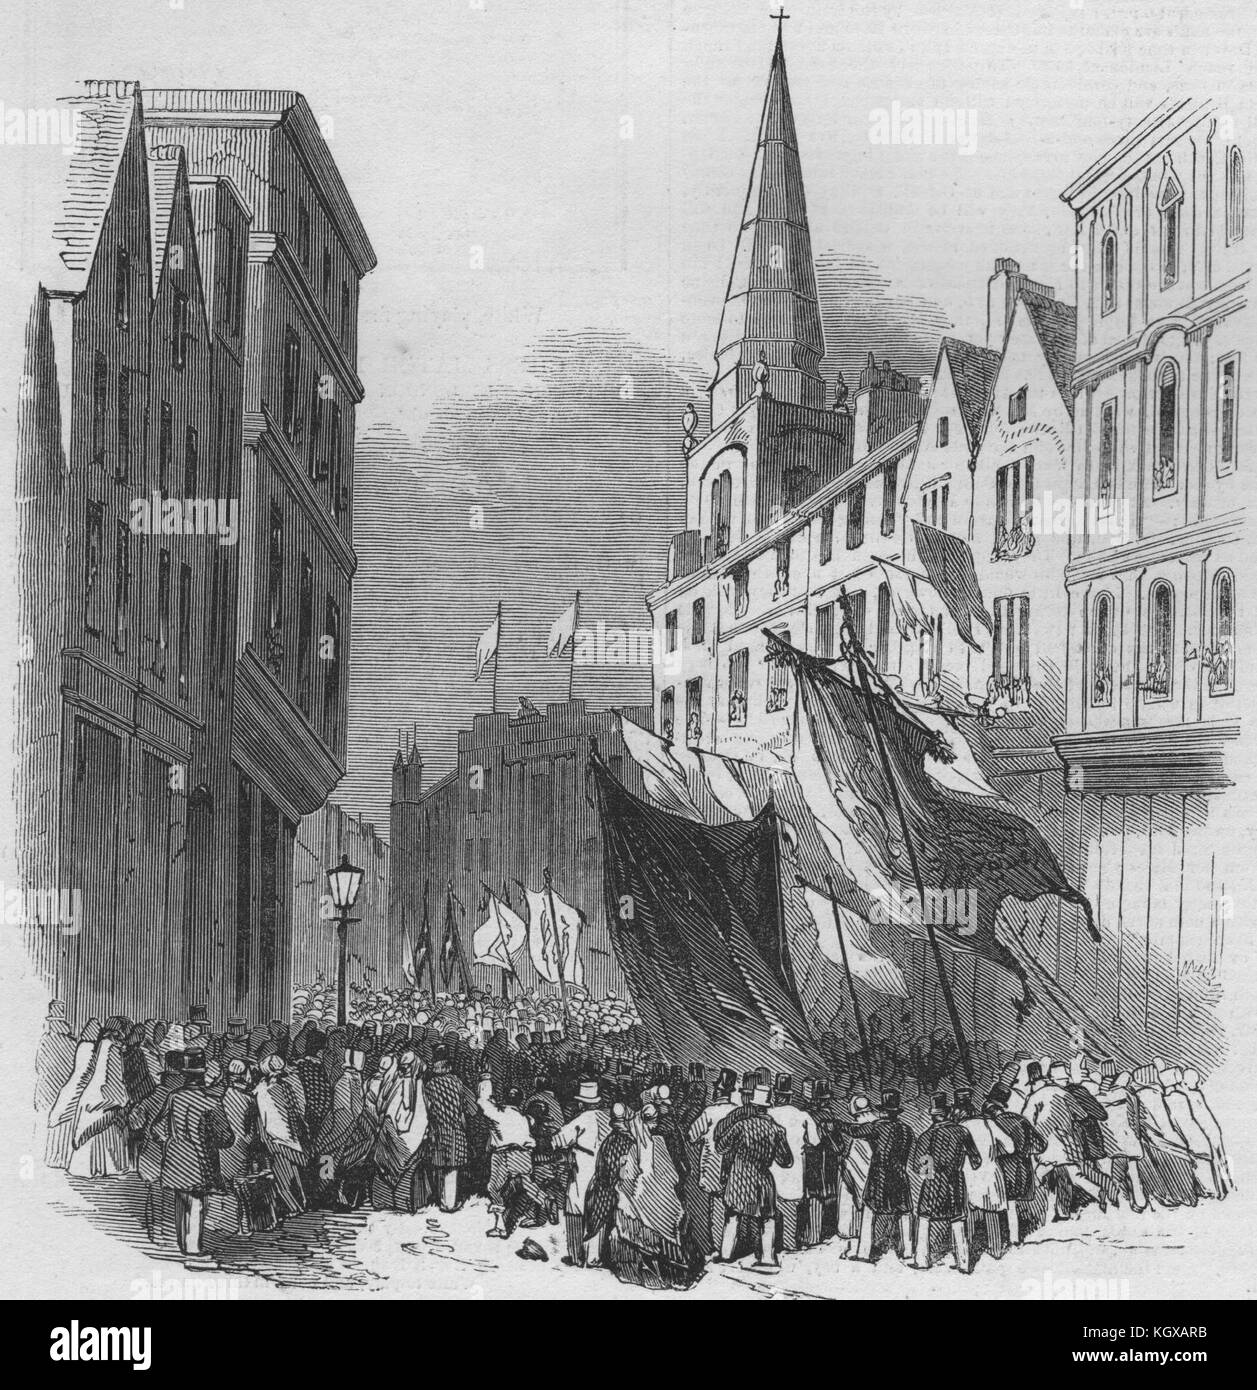 Bristol Fete. The procession in Wine Street 1848. The Illustrated London News - Stock Image